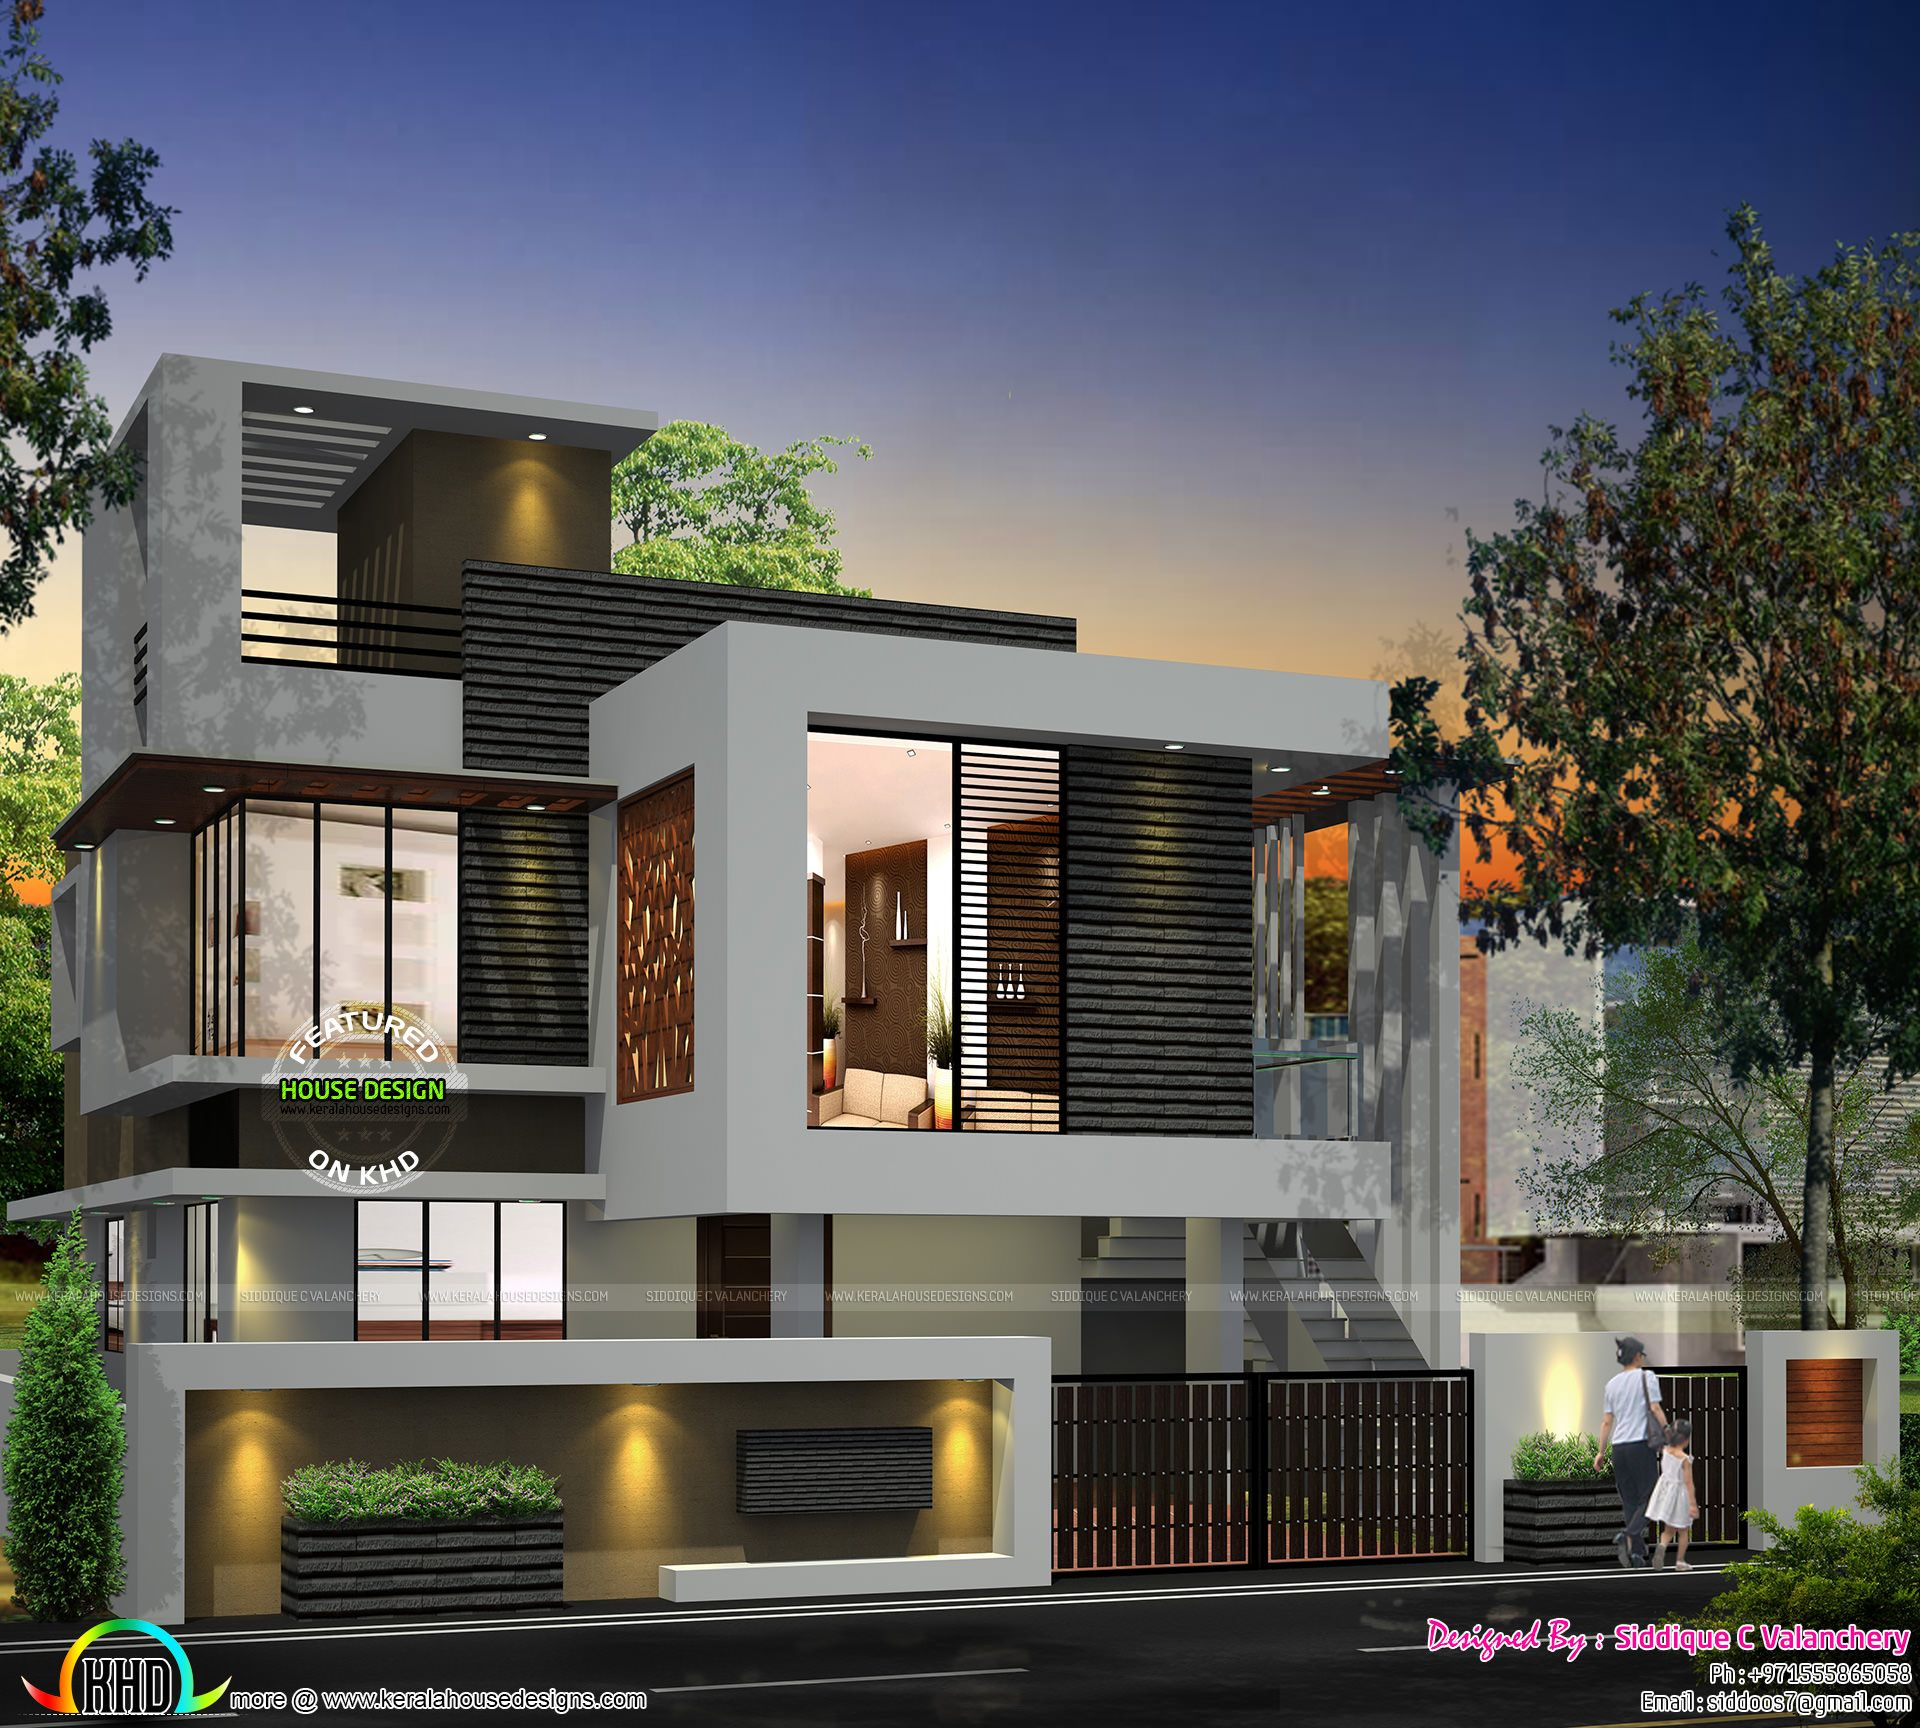 Home Design Exterior Ideas In India: Single Floor Turning To A Double Floor Home